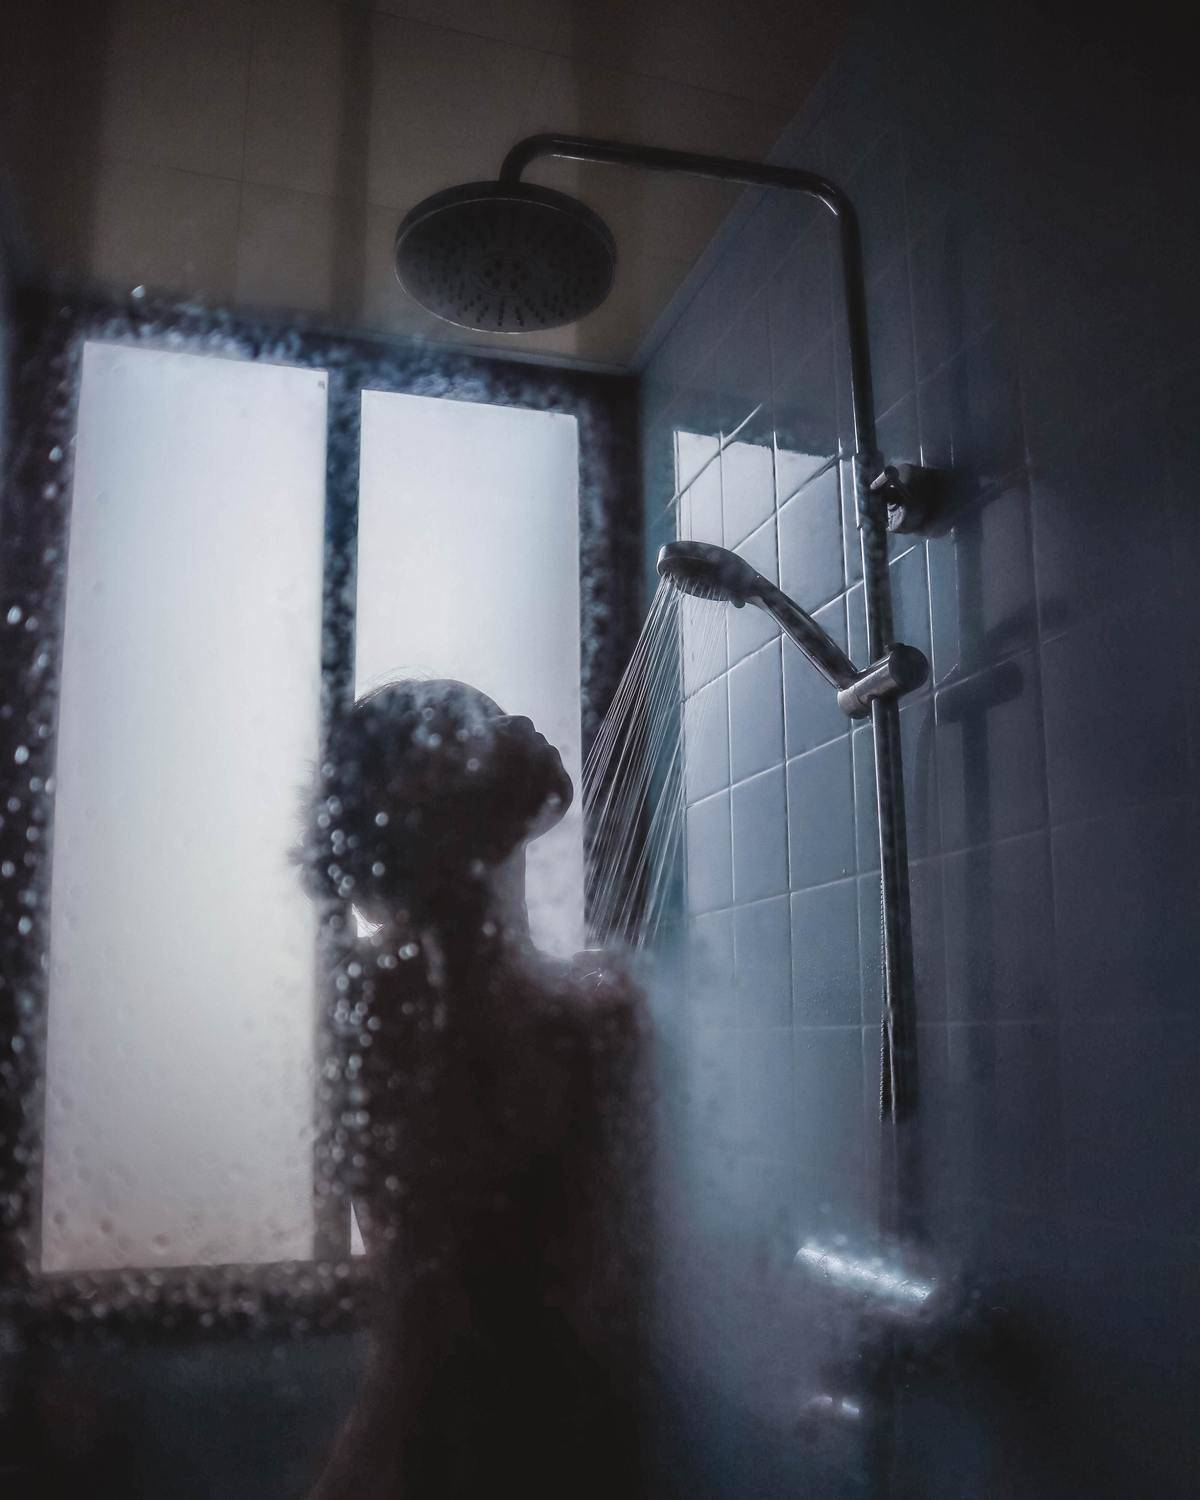 Woman in shower with water running